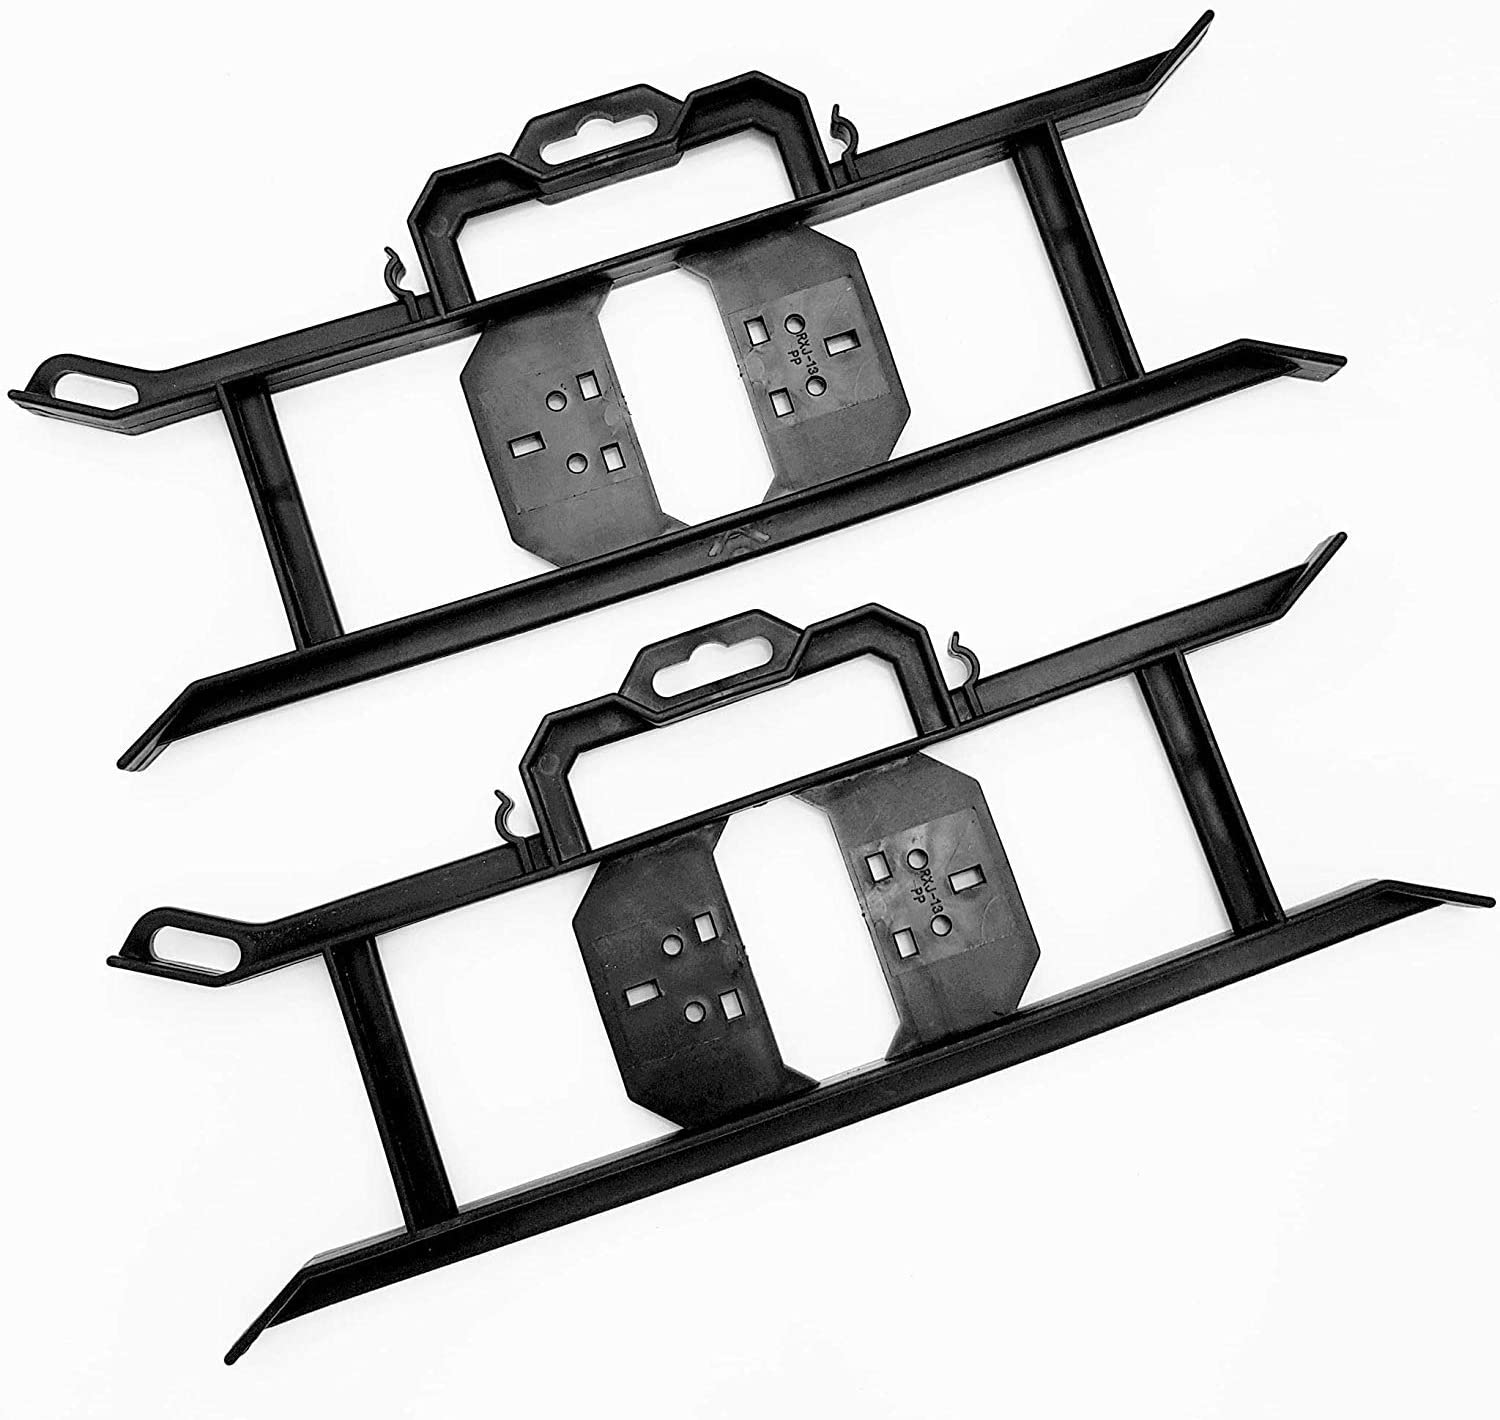 Cable//Extension Storage Black Lead Tidy H Frame With Handle For Camping Hook Up